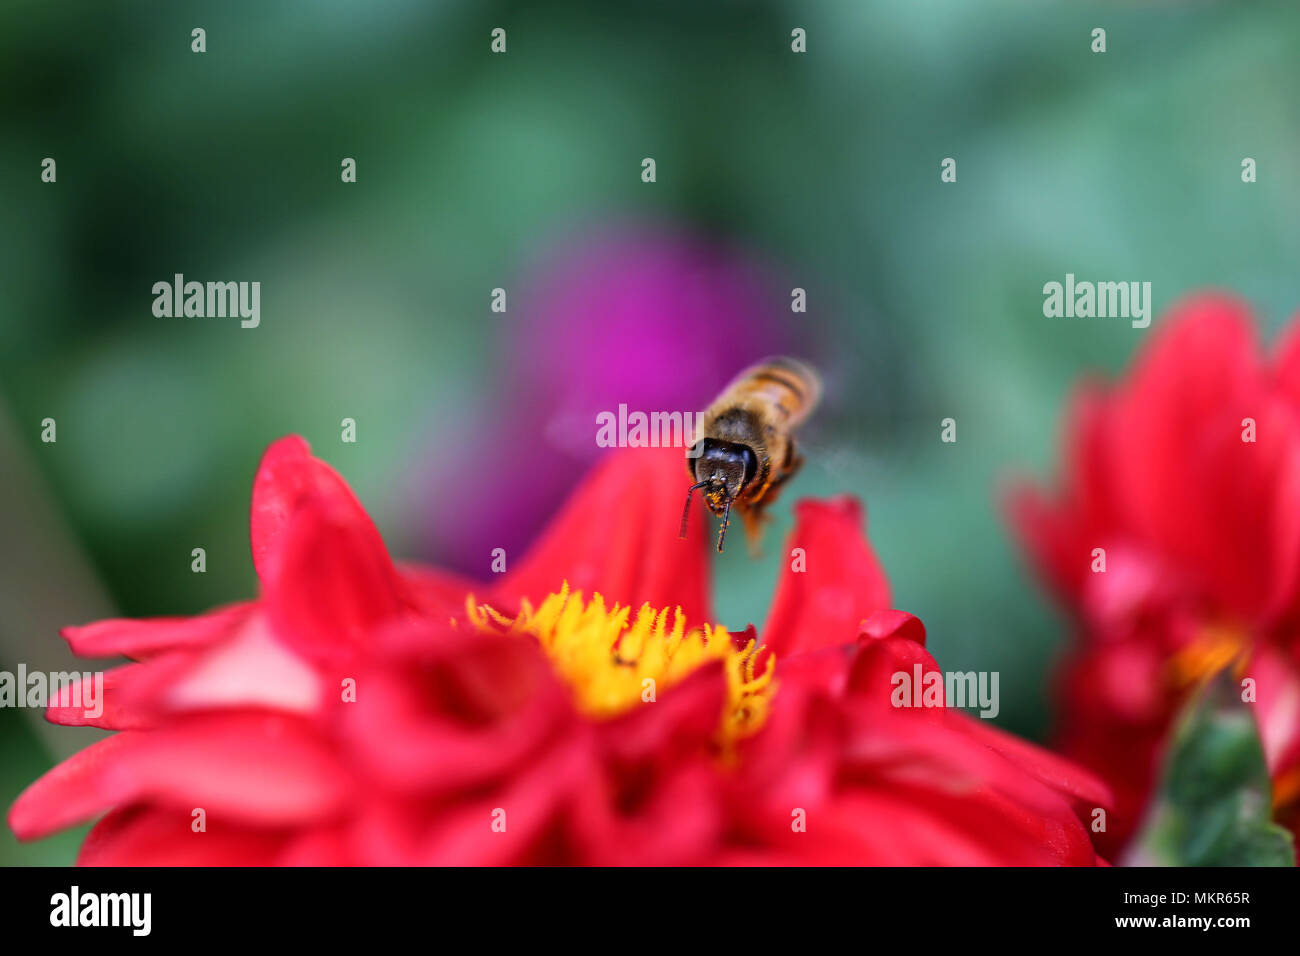 Bee in Action - Stock Image